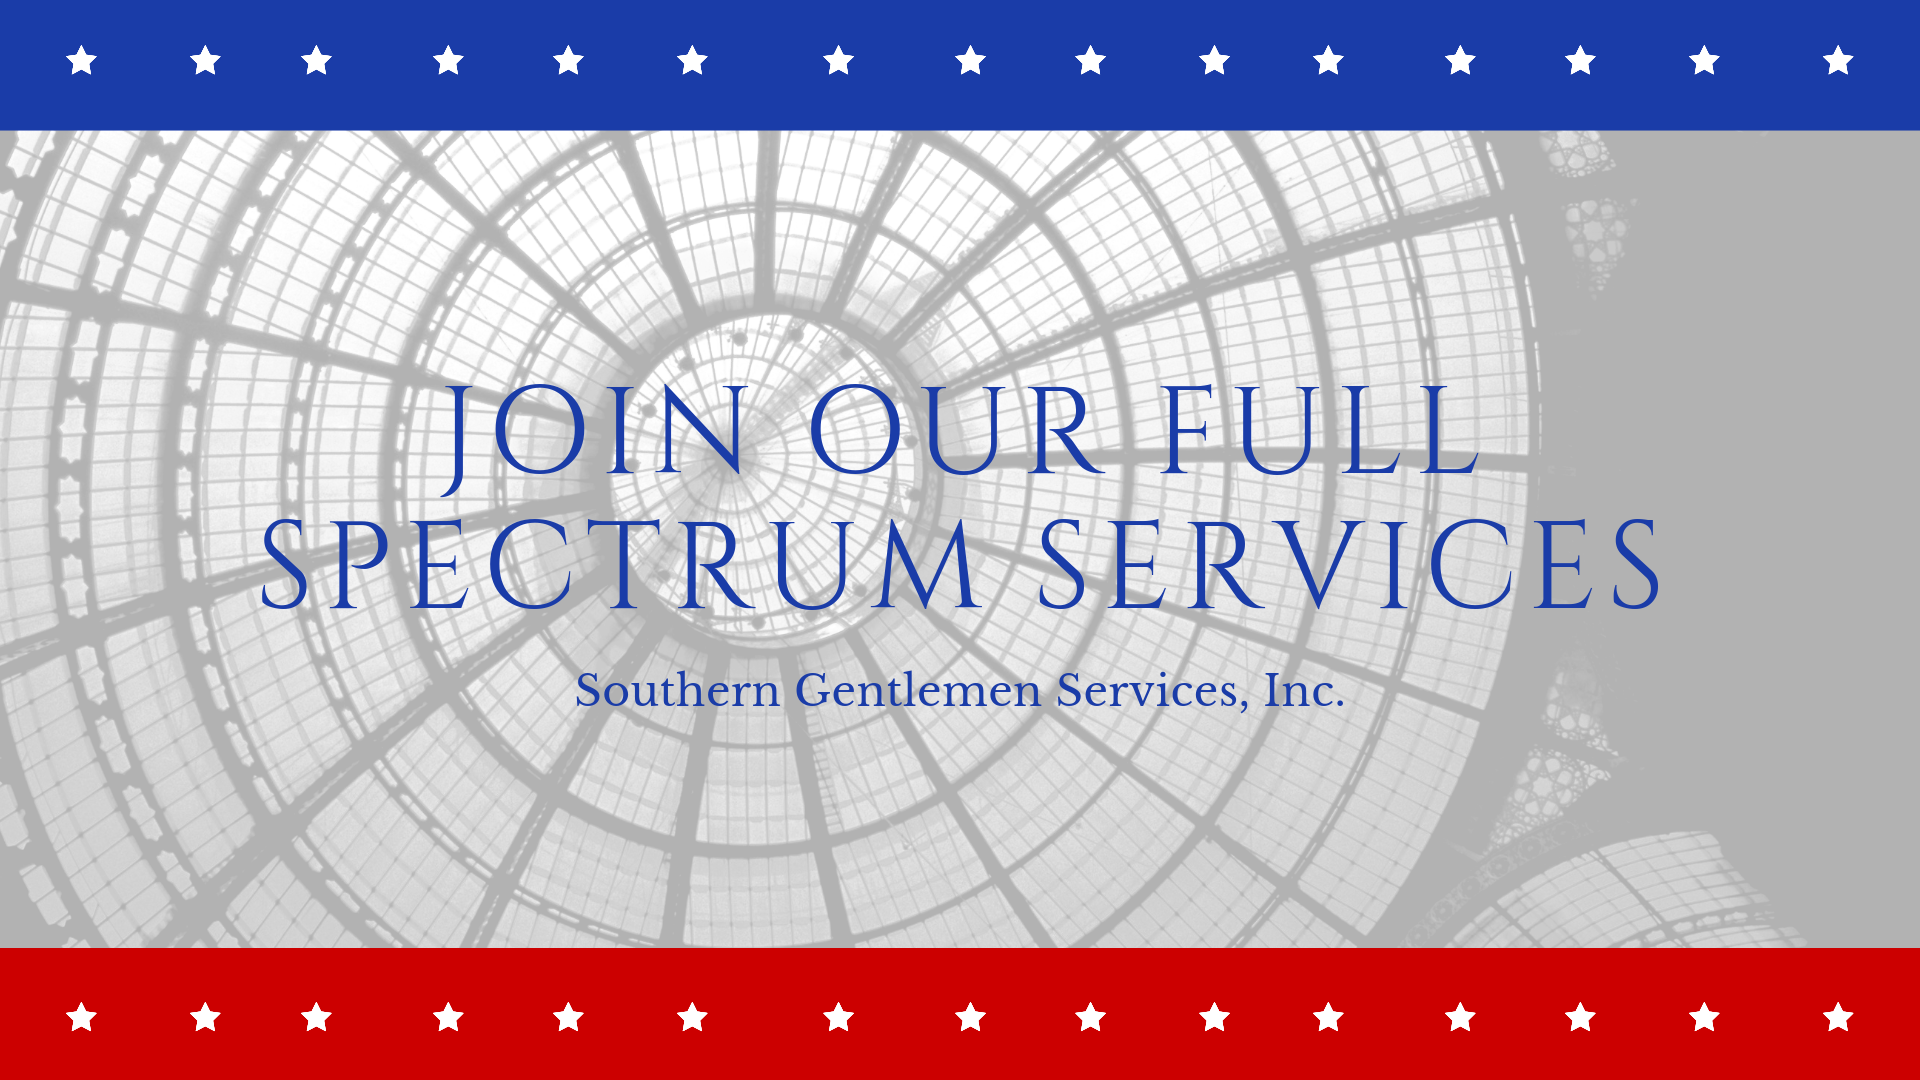 Business Services by Southern Gentlemen Services